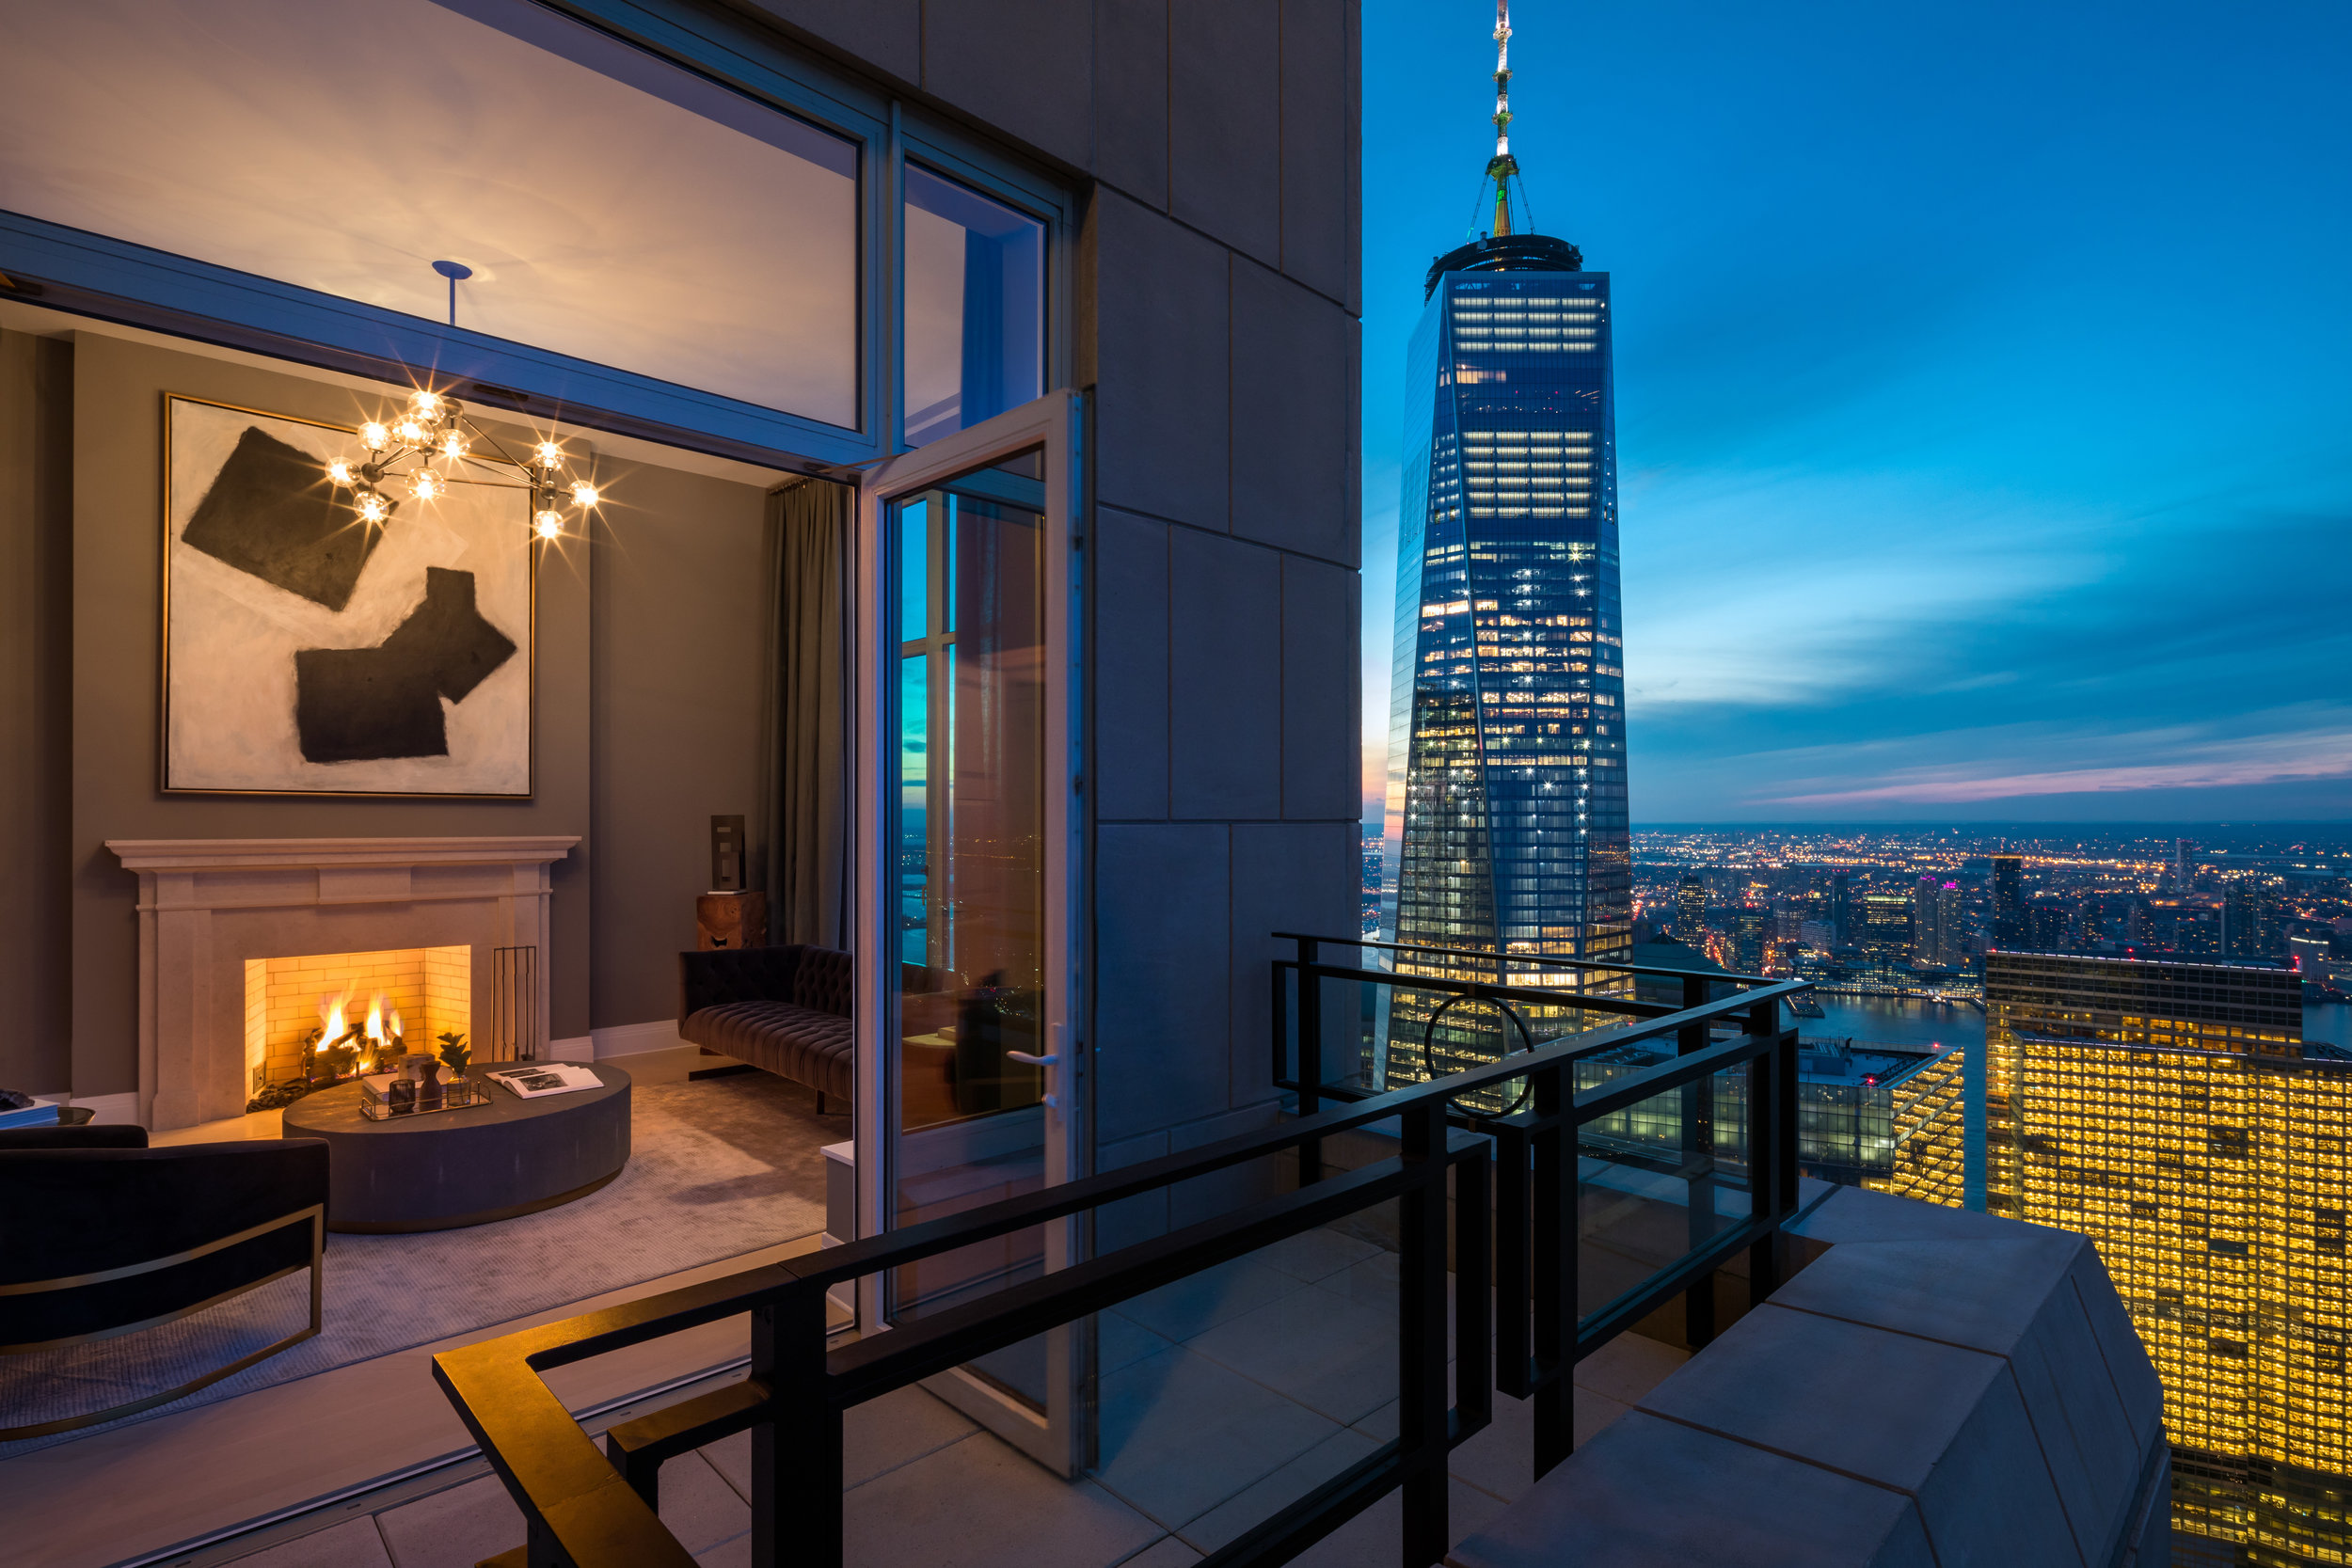 First Look Inside The Highest Terraced Penthouse In NYC At The Robert A.M. Stern-Designed 30 Park Place